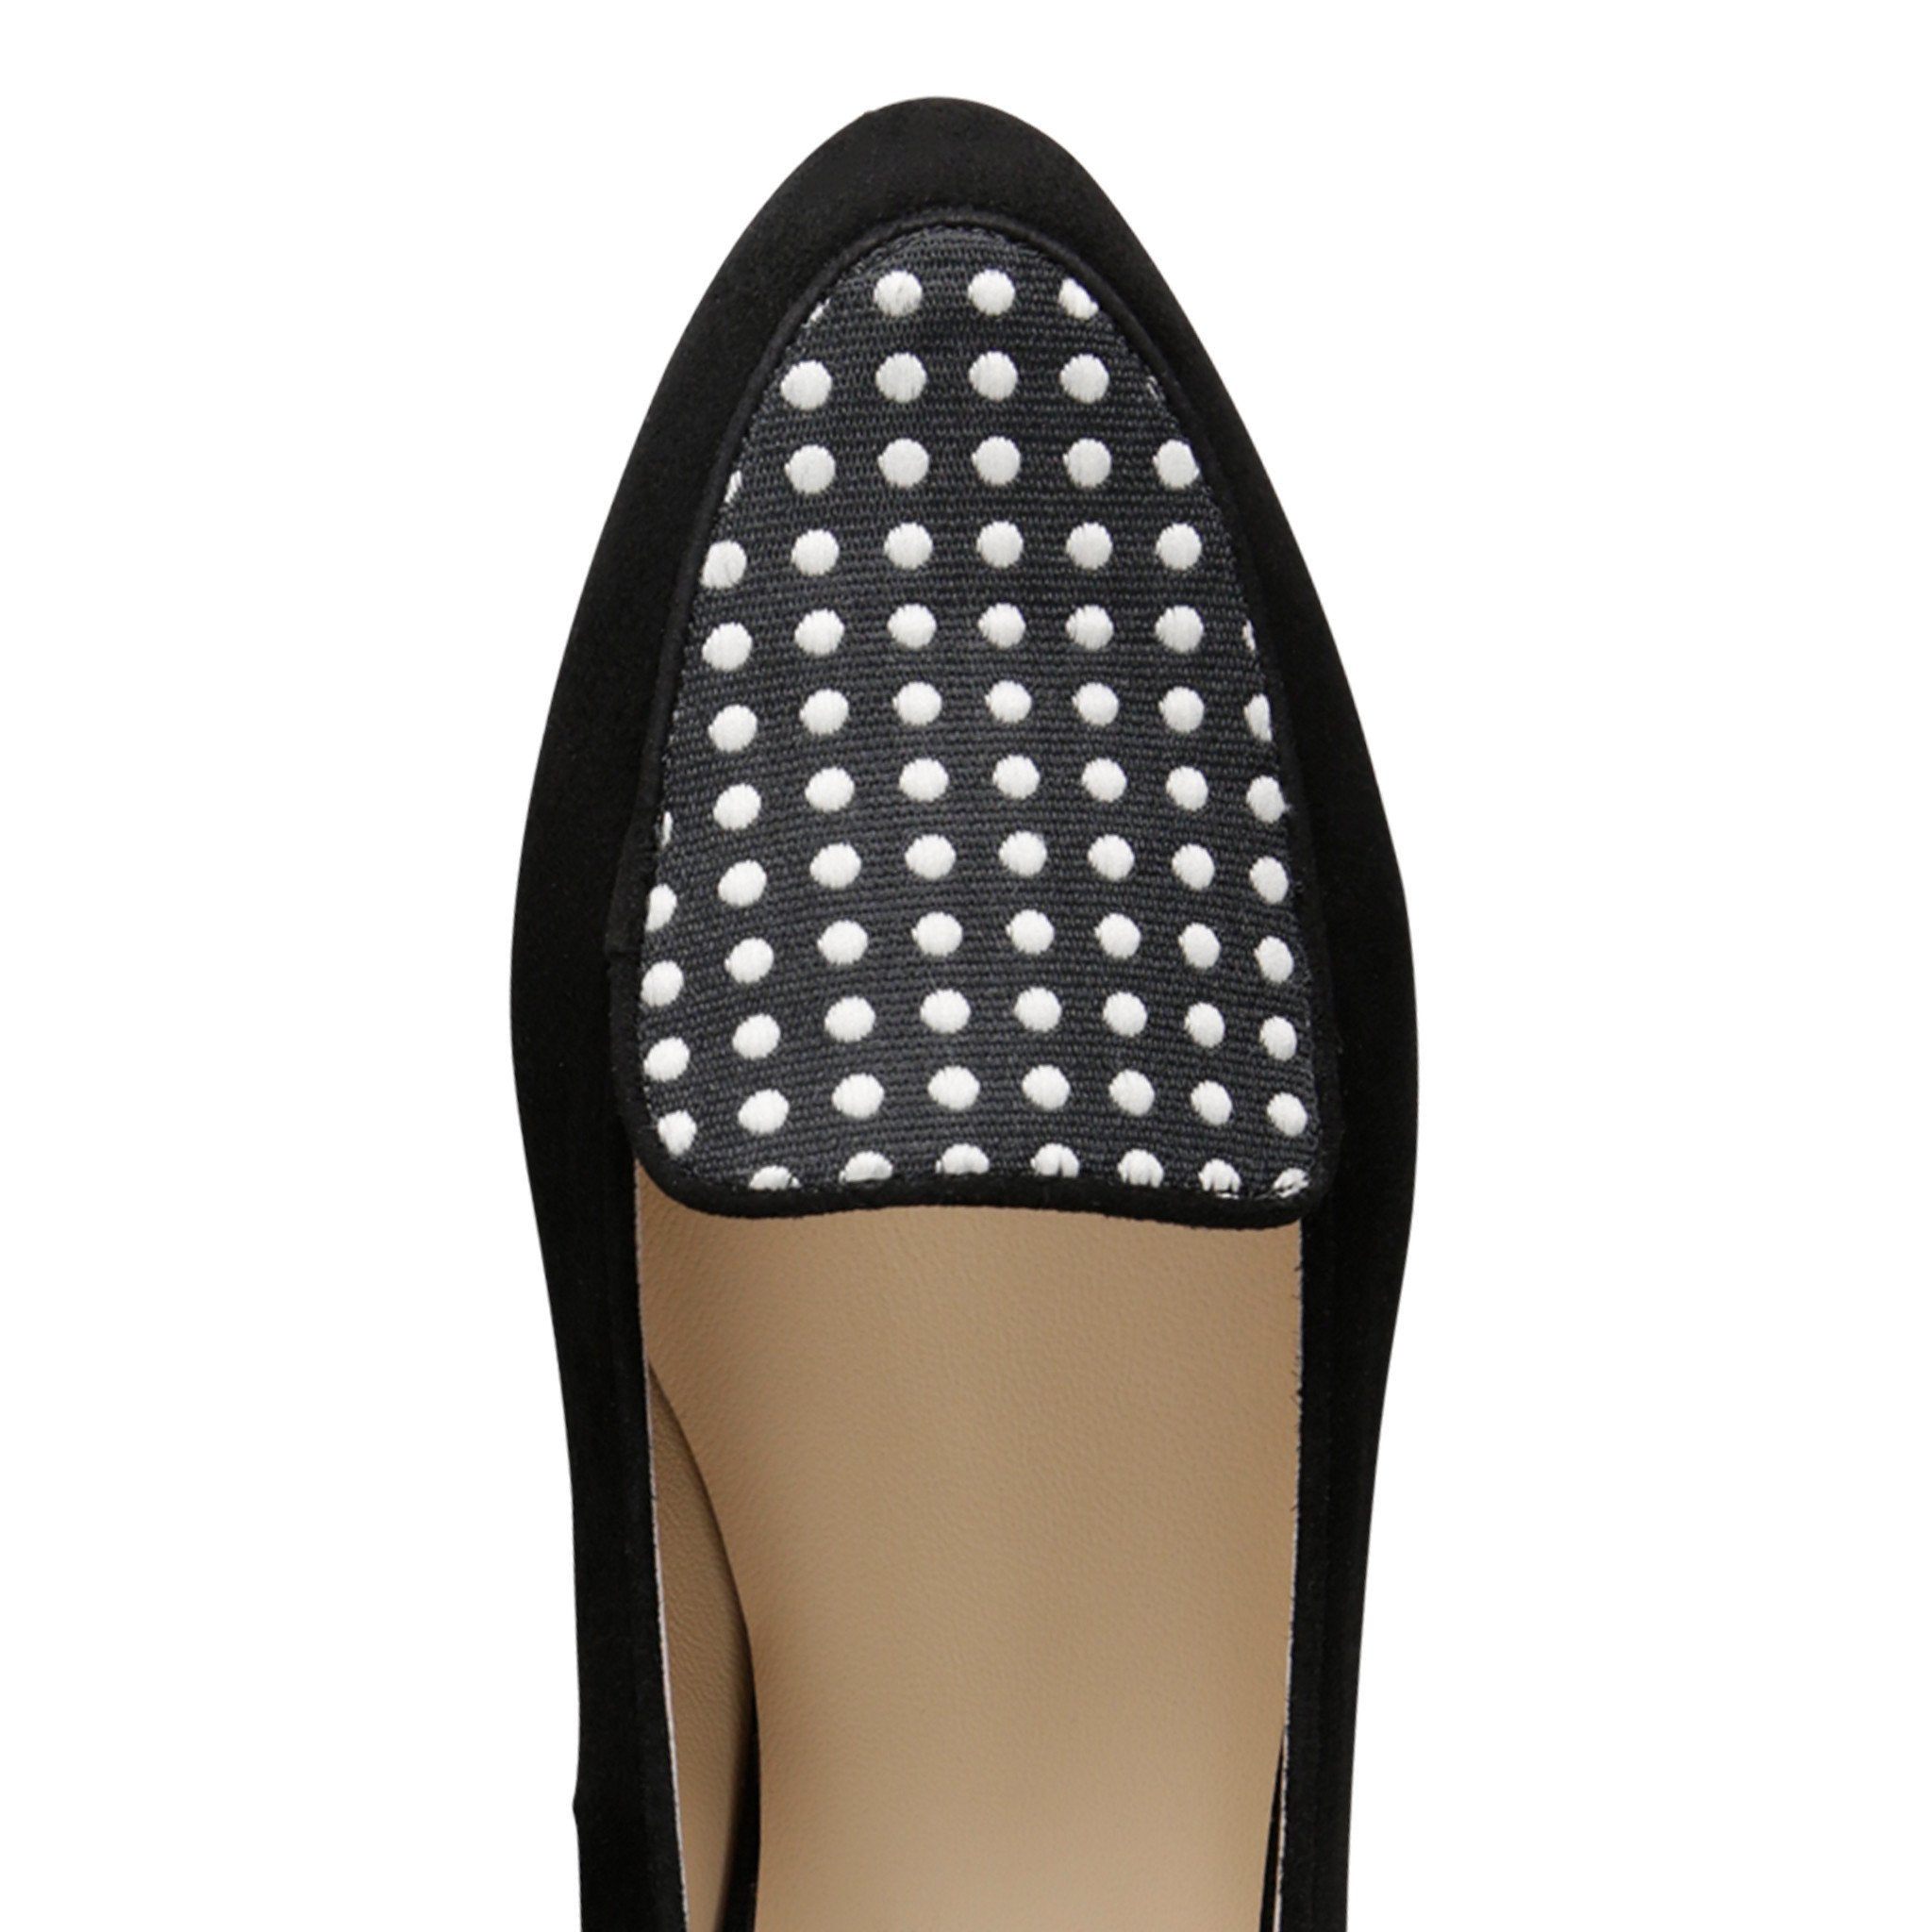 REGGIO - Velukid Nero + Textile Polka Dot Black & White, VIAJIYU - Women's Hand Made Sustainable Luxury Shoes. Made in Italy. Made to Order.